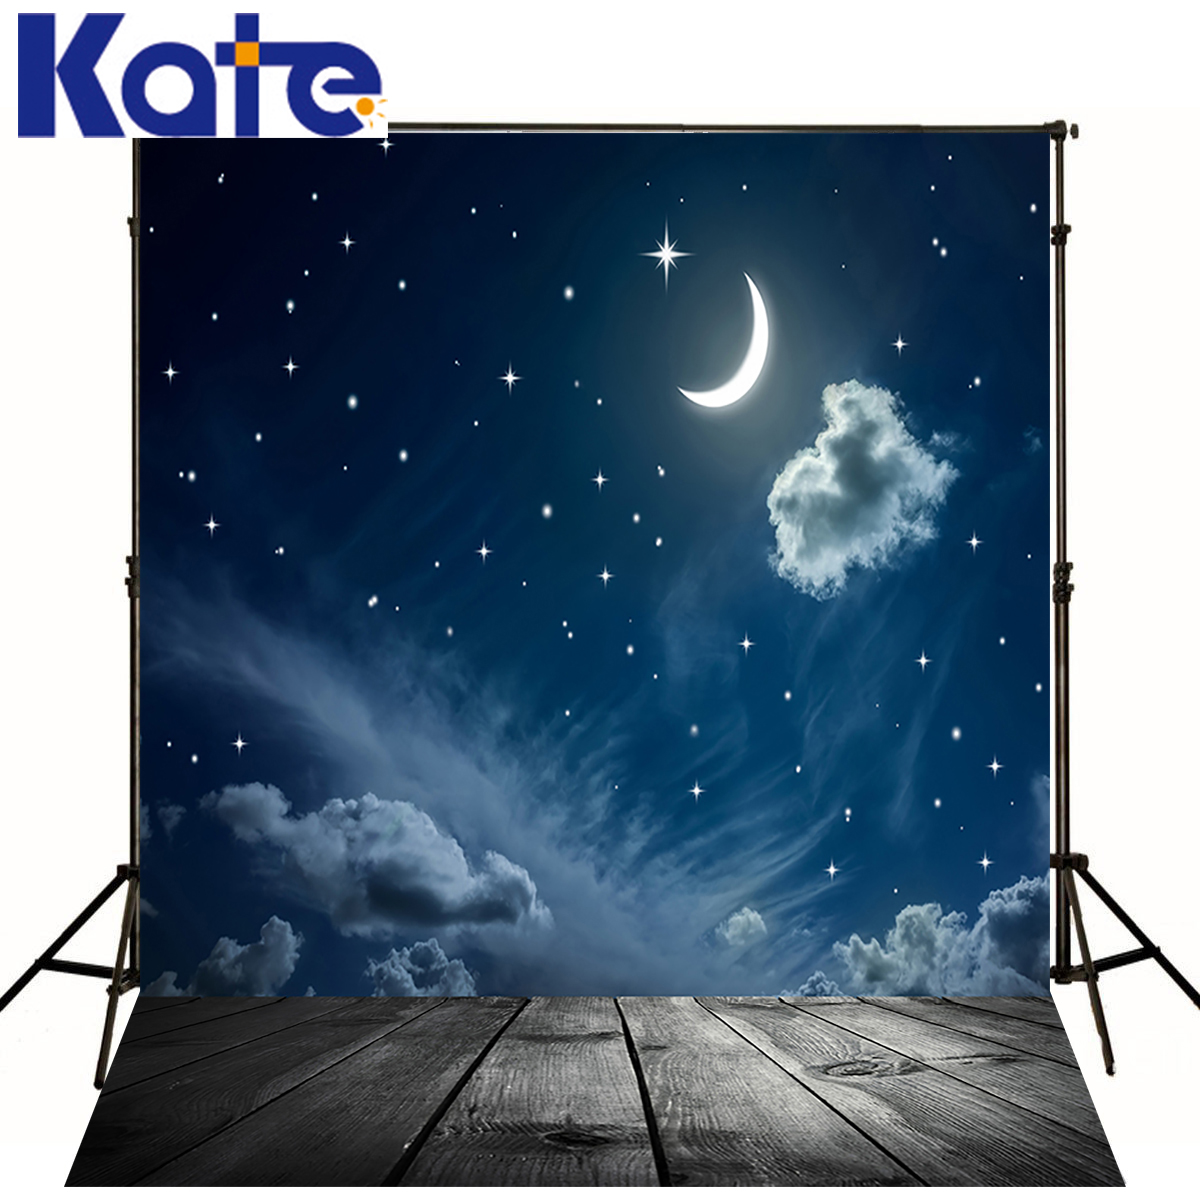 Kate Newborn Baby Photography Backdrops Wood Floor Fundo Fotografico Madeira Starry Sky Clound Photography Background Studio<br>